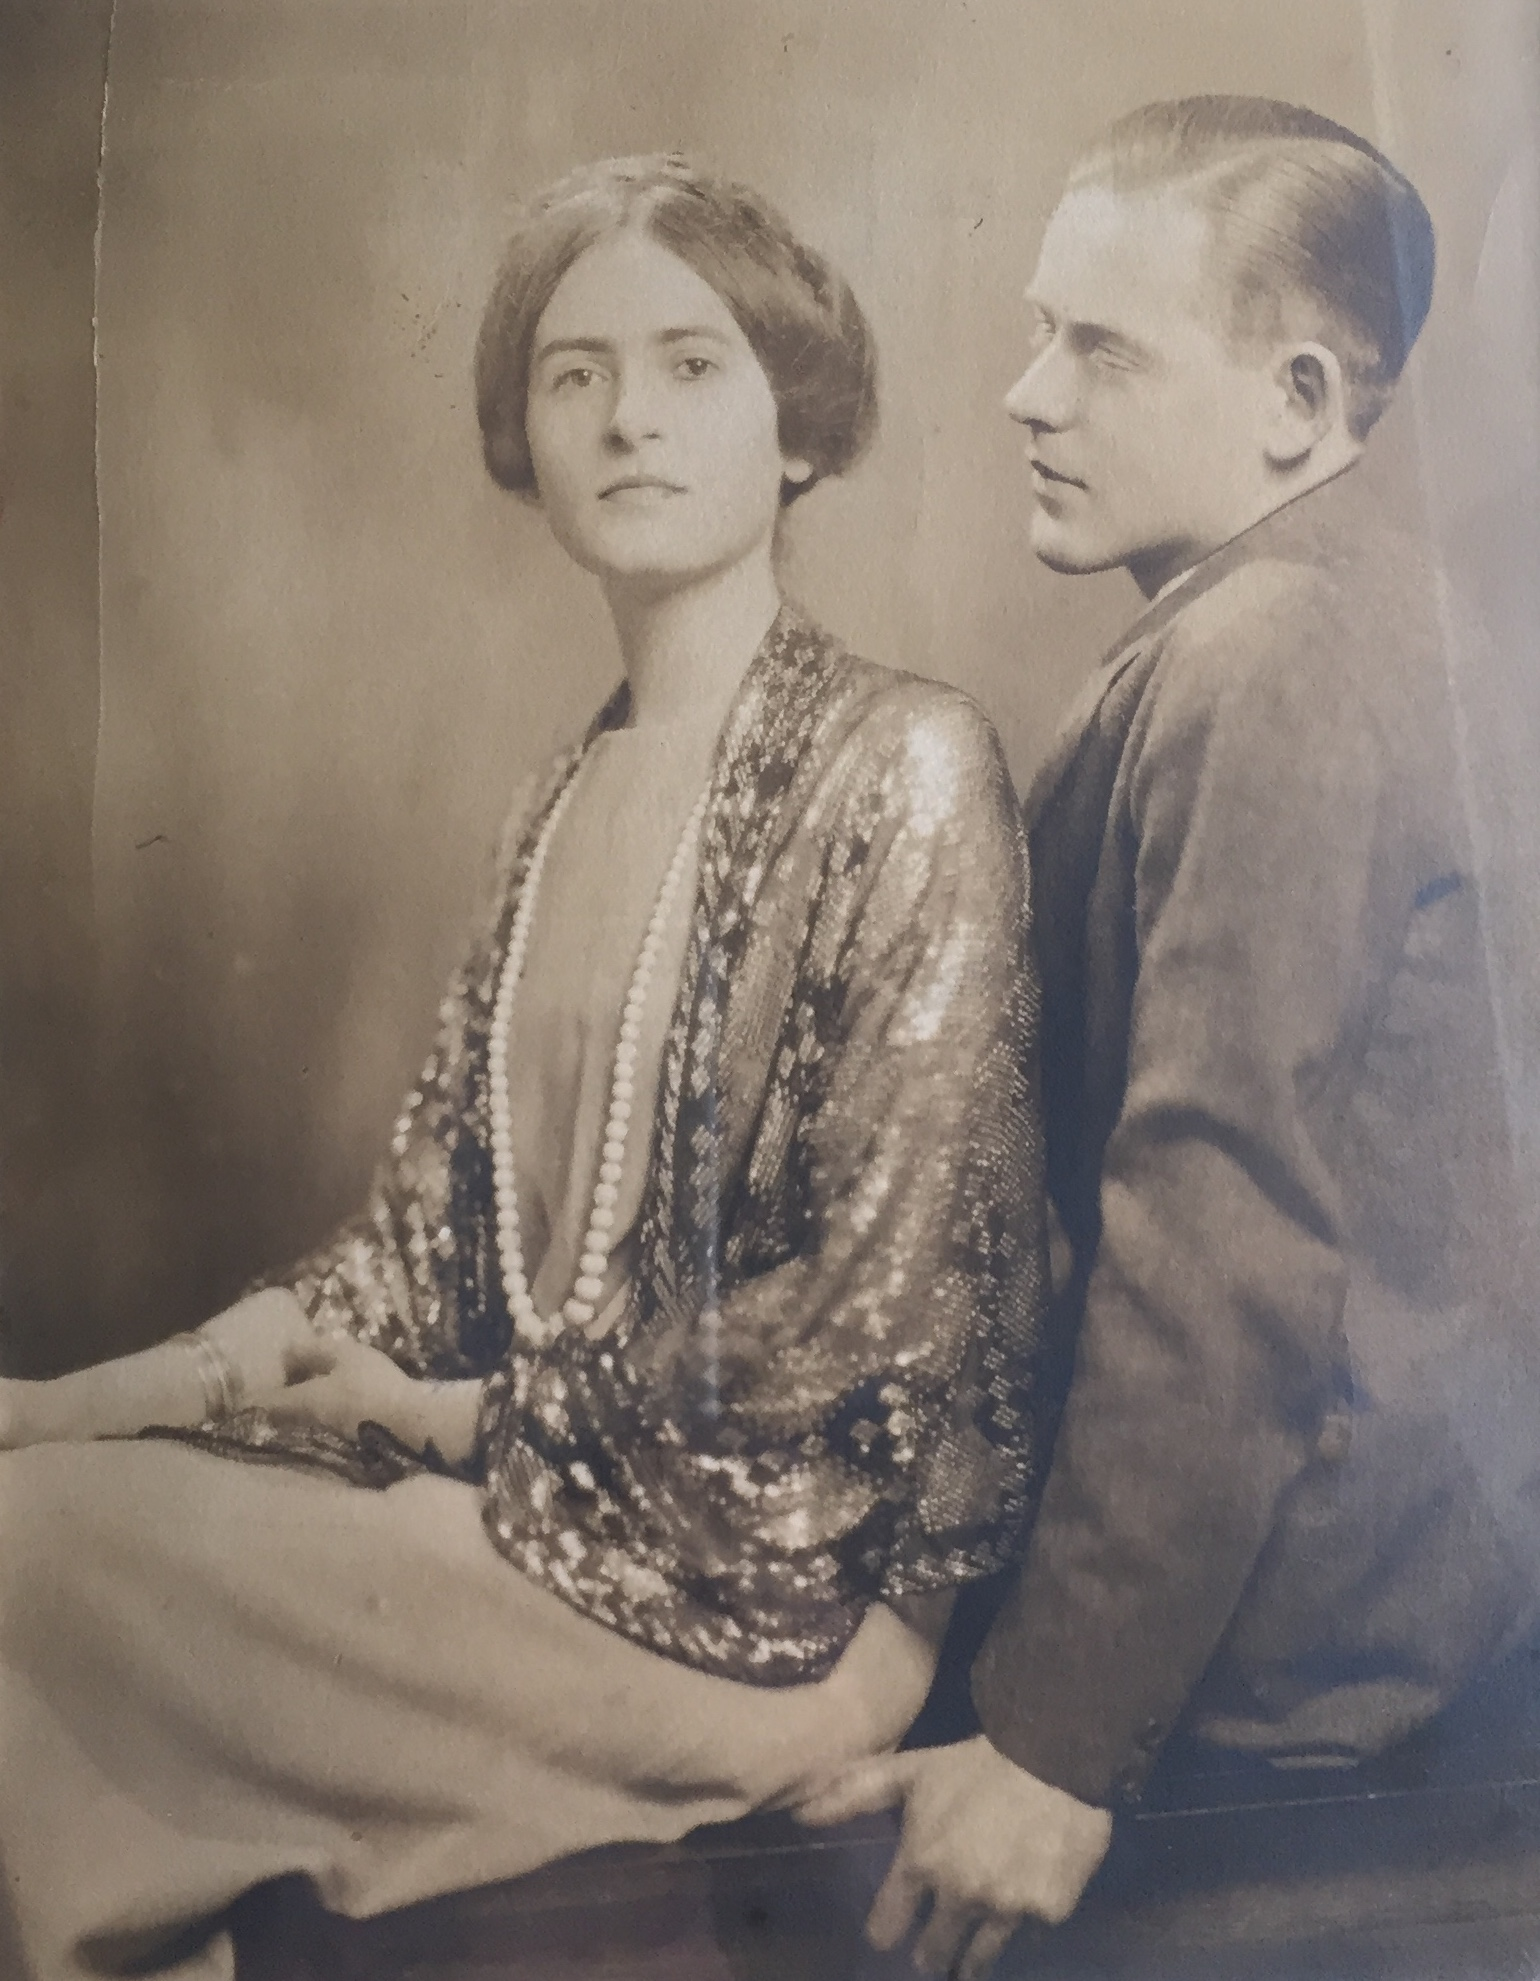 Ken and Elsie Oliver c. 1925 engagement photo